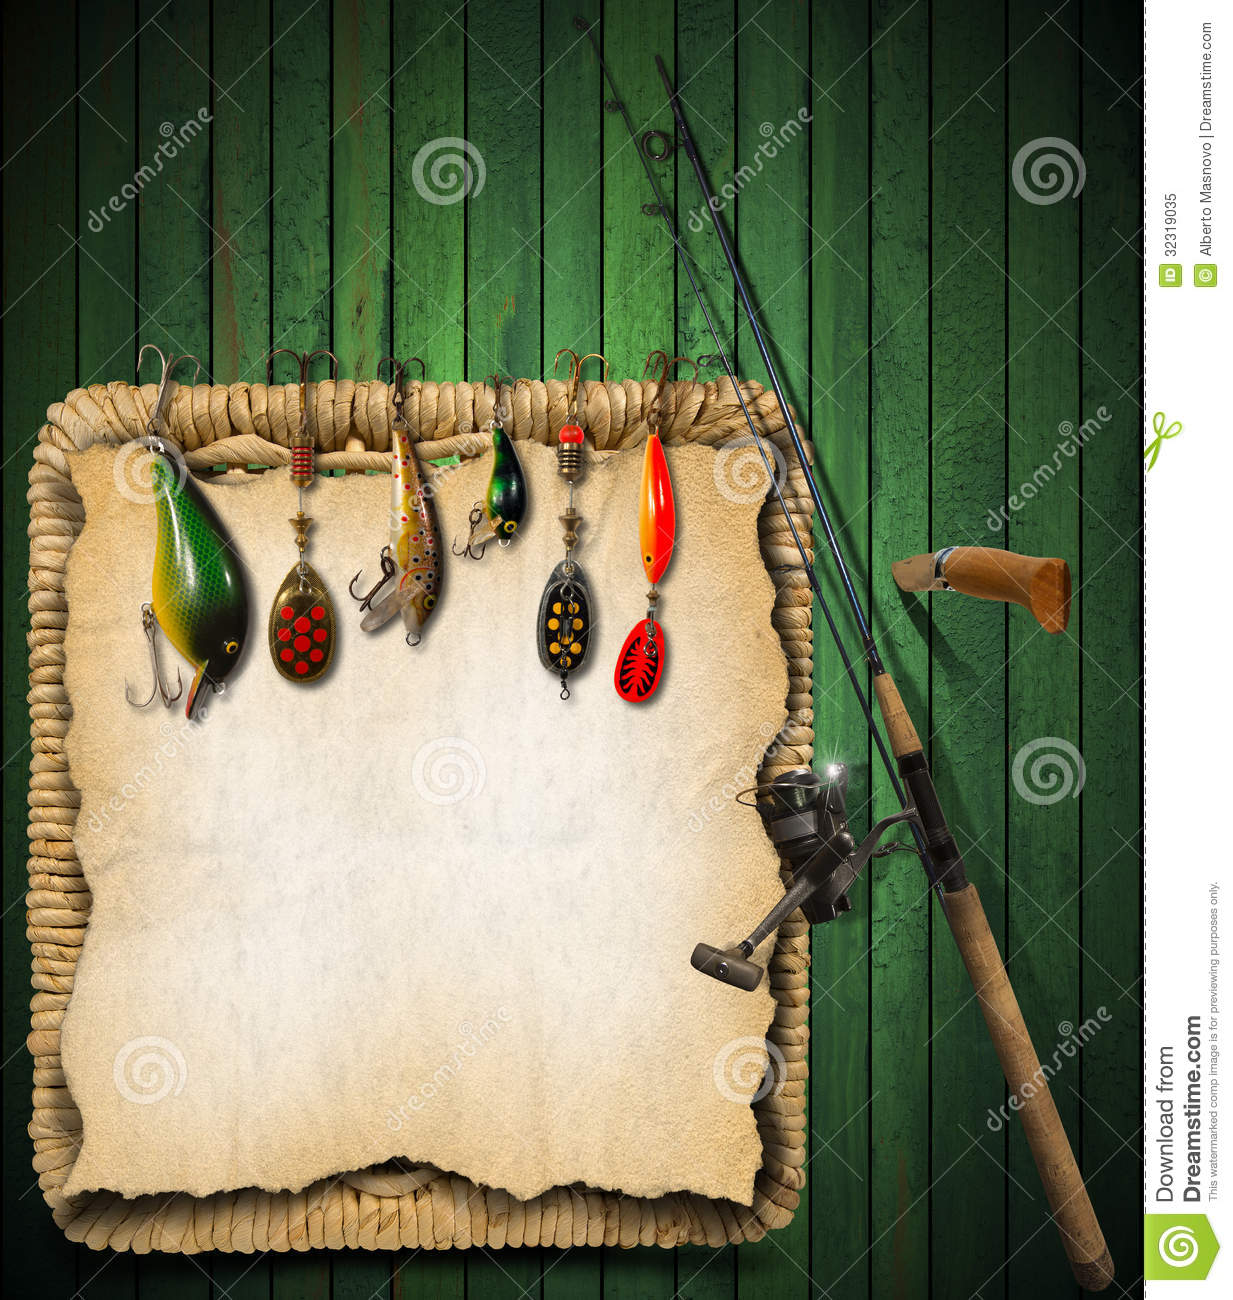 fishing tackle green wood background royalty free stock photo, Reel Combo